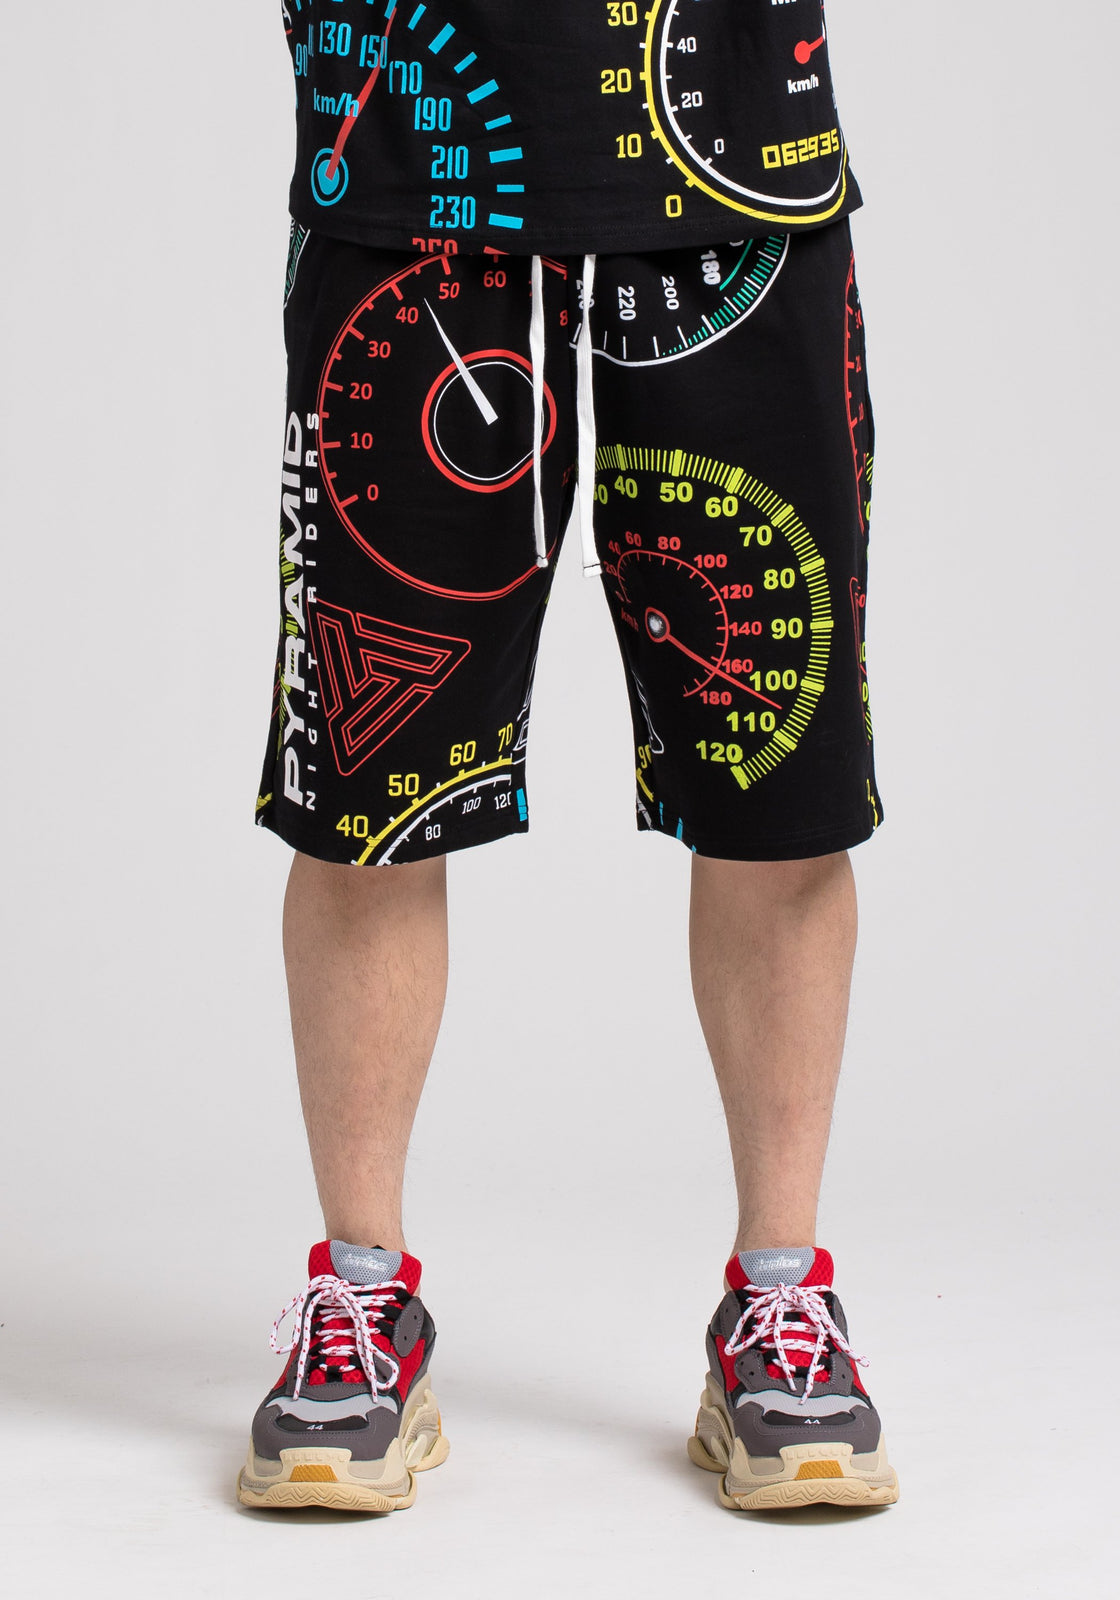 NIGHT RIDERS SHORTS - Color: Black